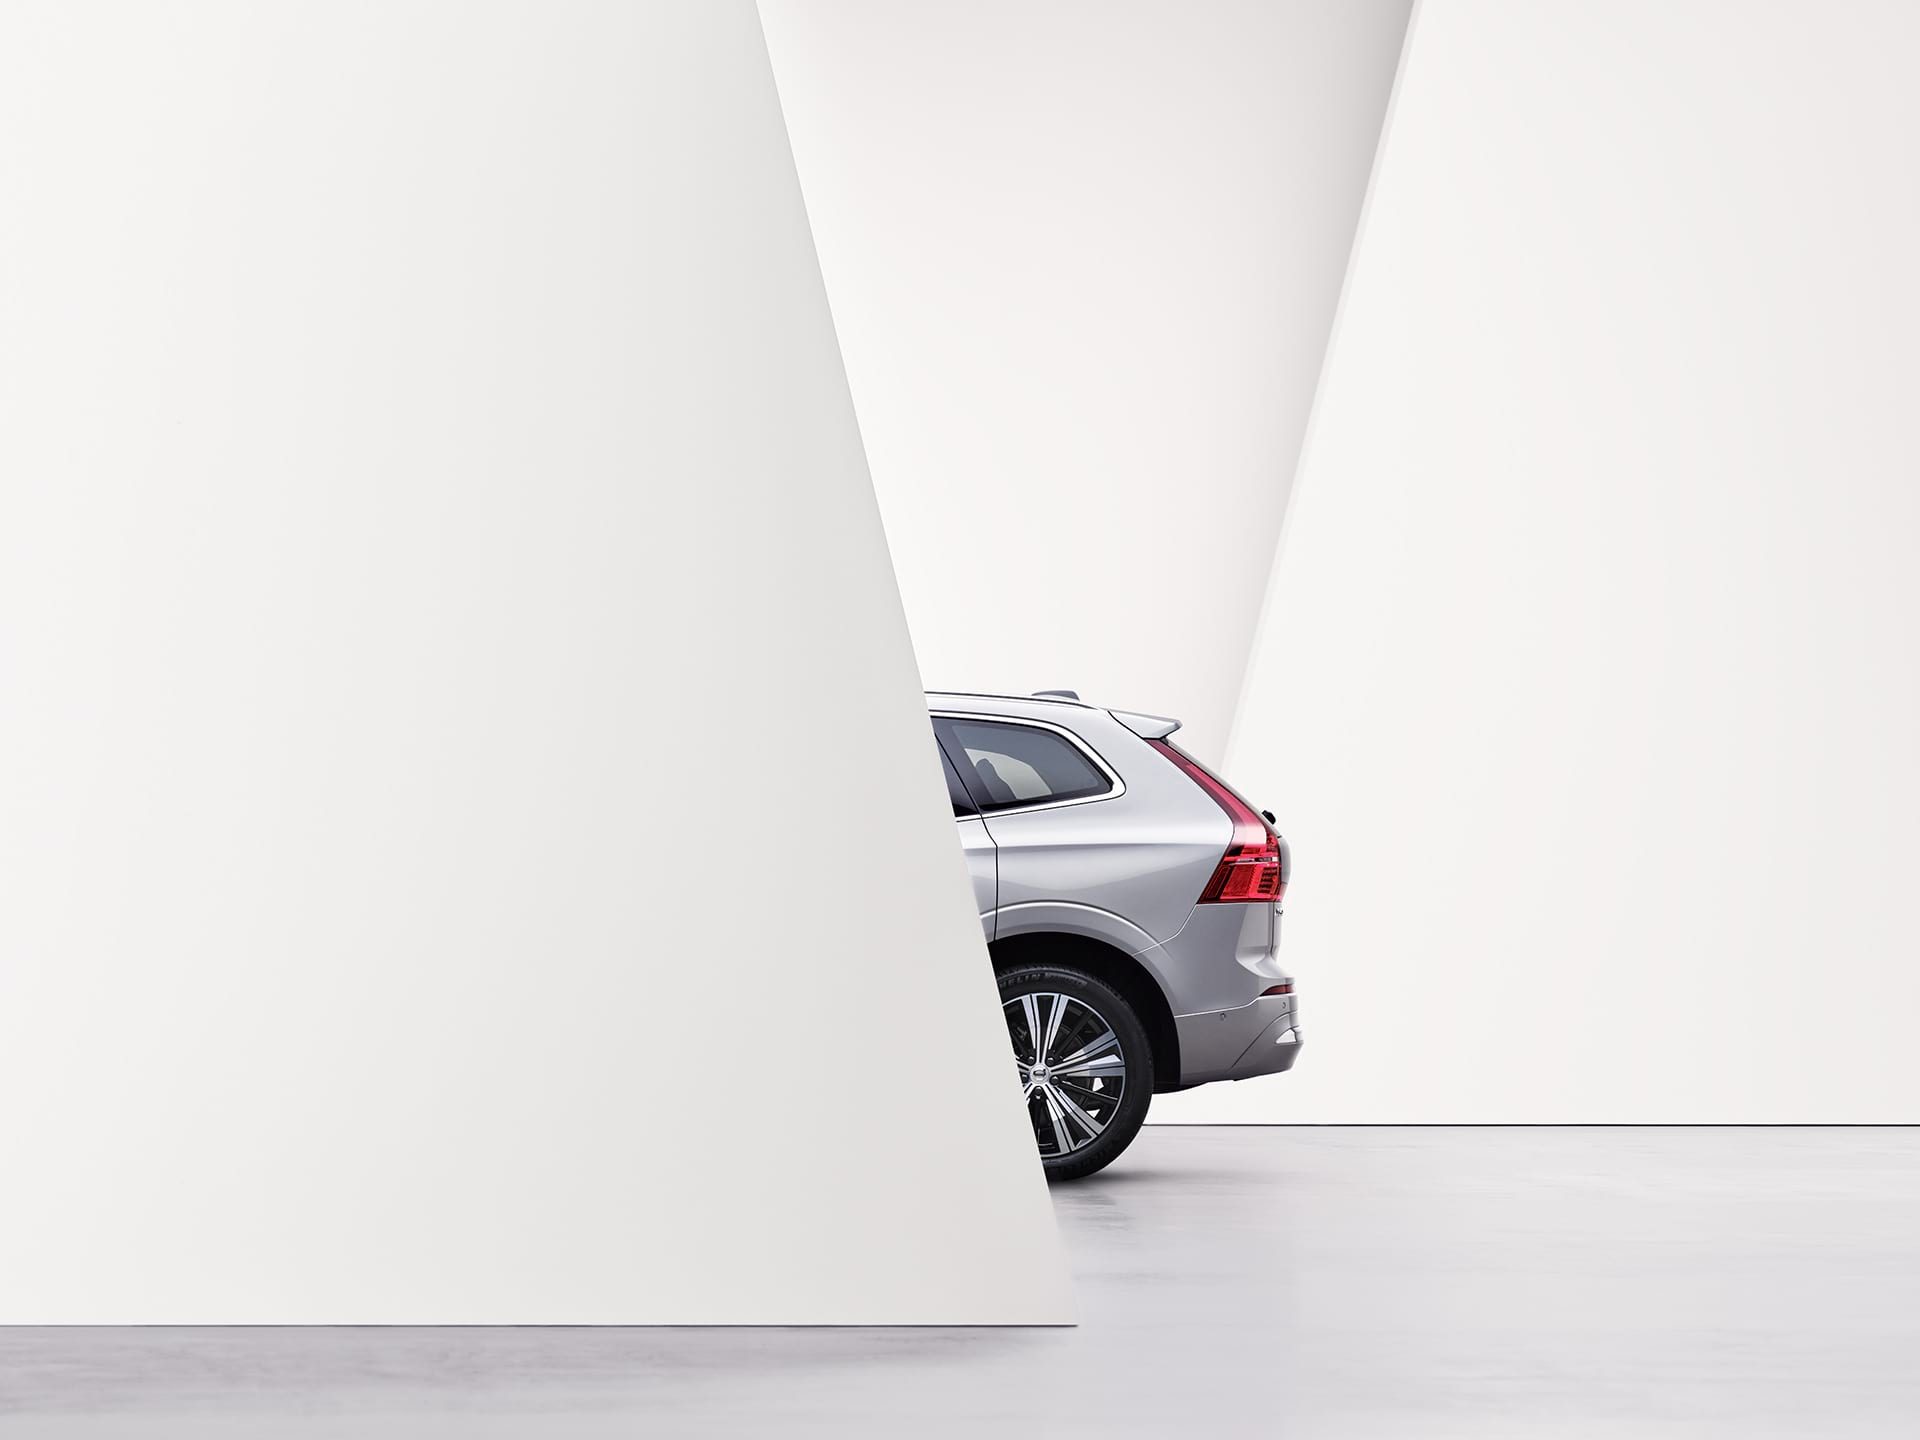 The rear exterior of a silver Volvo XC60.